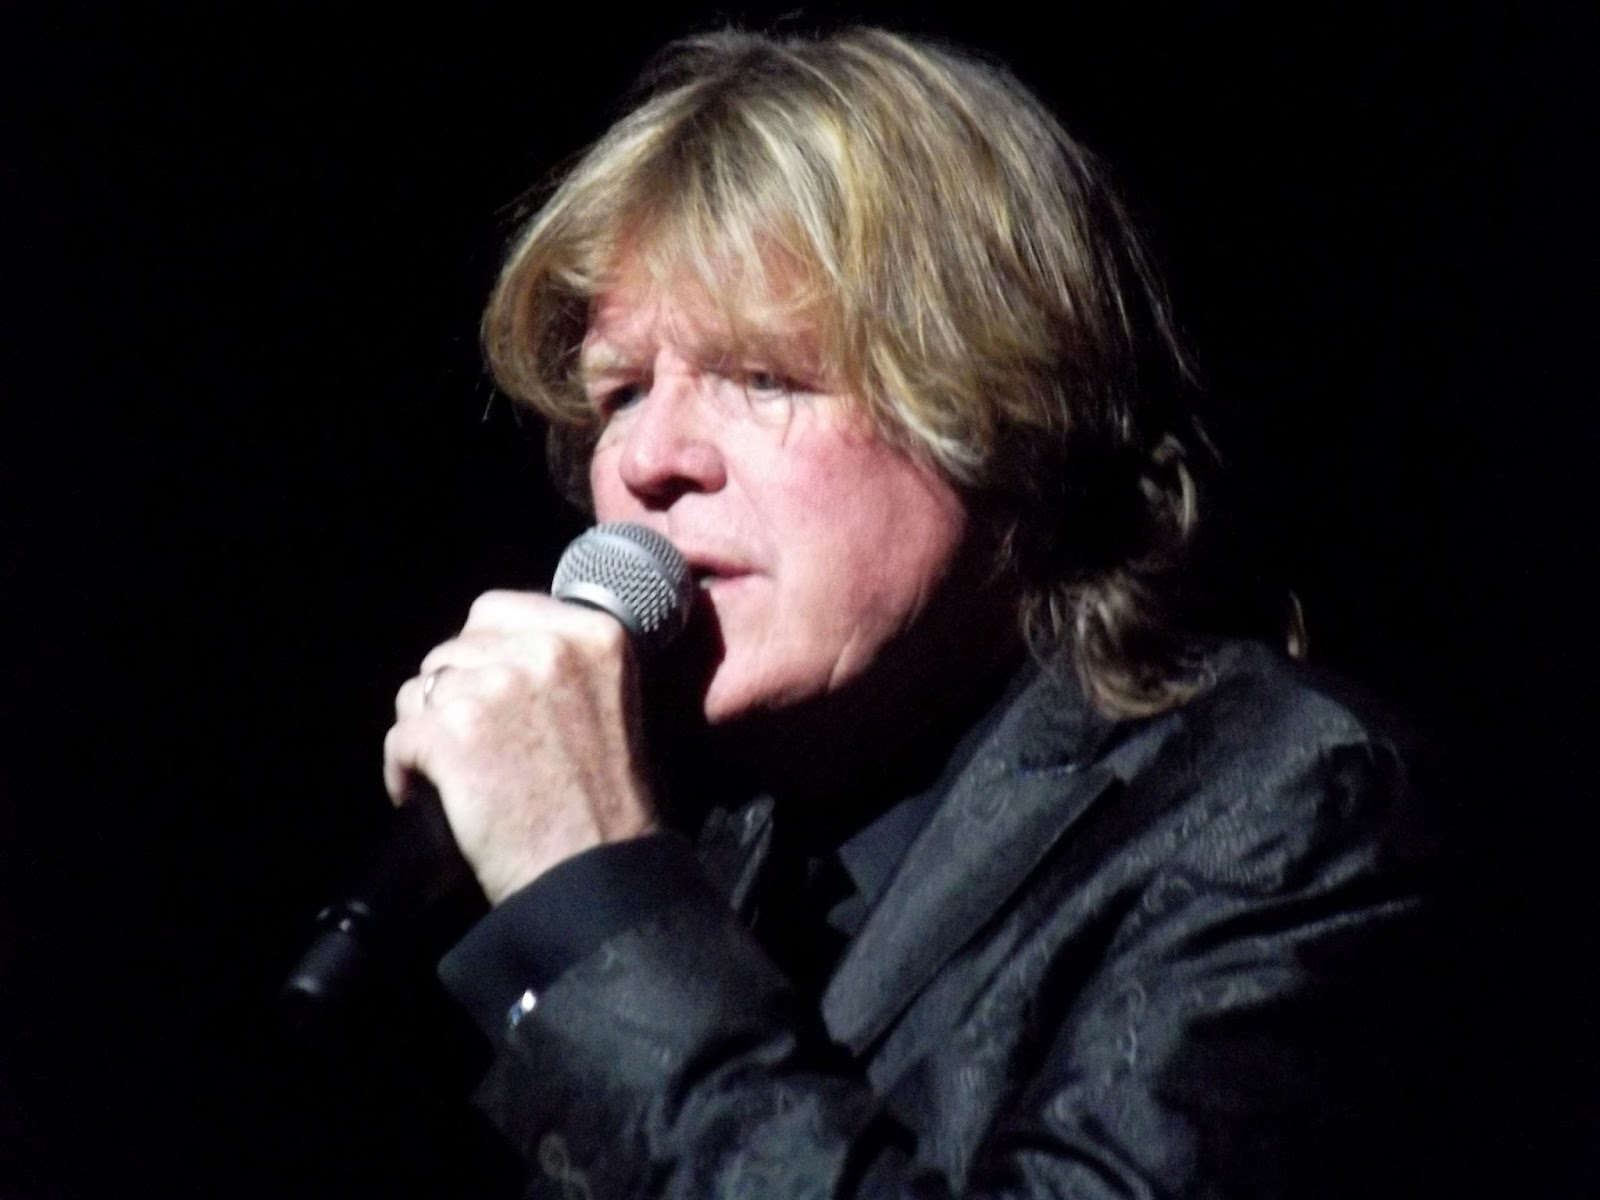 PERSONAL PERSPECTIVES: Sixties Soul, Still Going Strong - PETER NOONE of Herman's Hermits starring Peter Noone [Photo by the author - Carlos Alvarez Studio Theatre, Tobin Center for the Performing Arts, San Antonio, Texas; 20 March 2016]